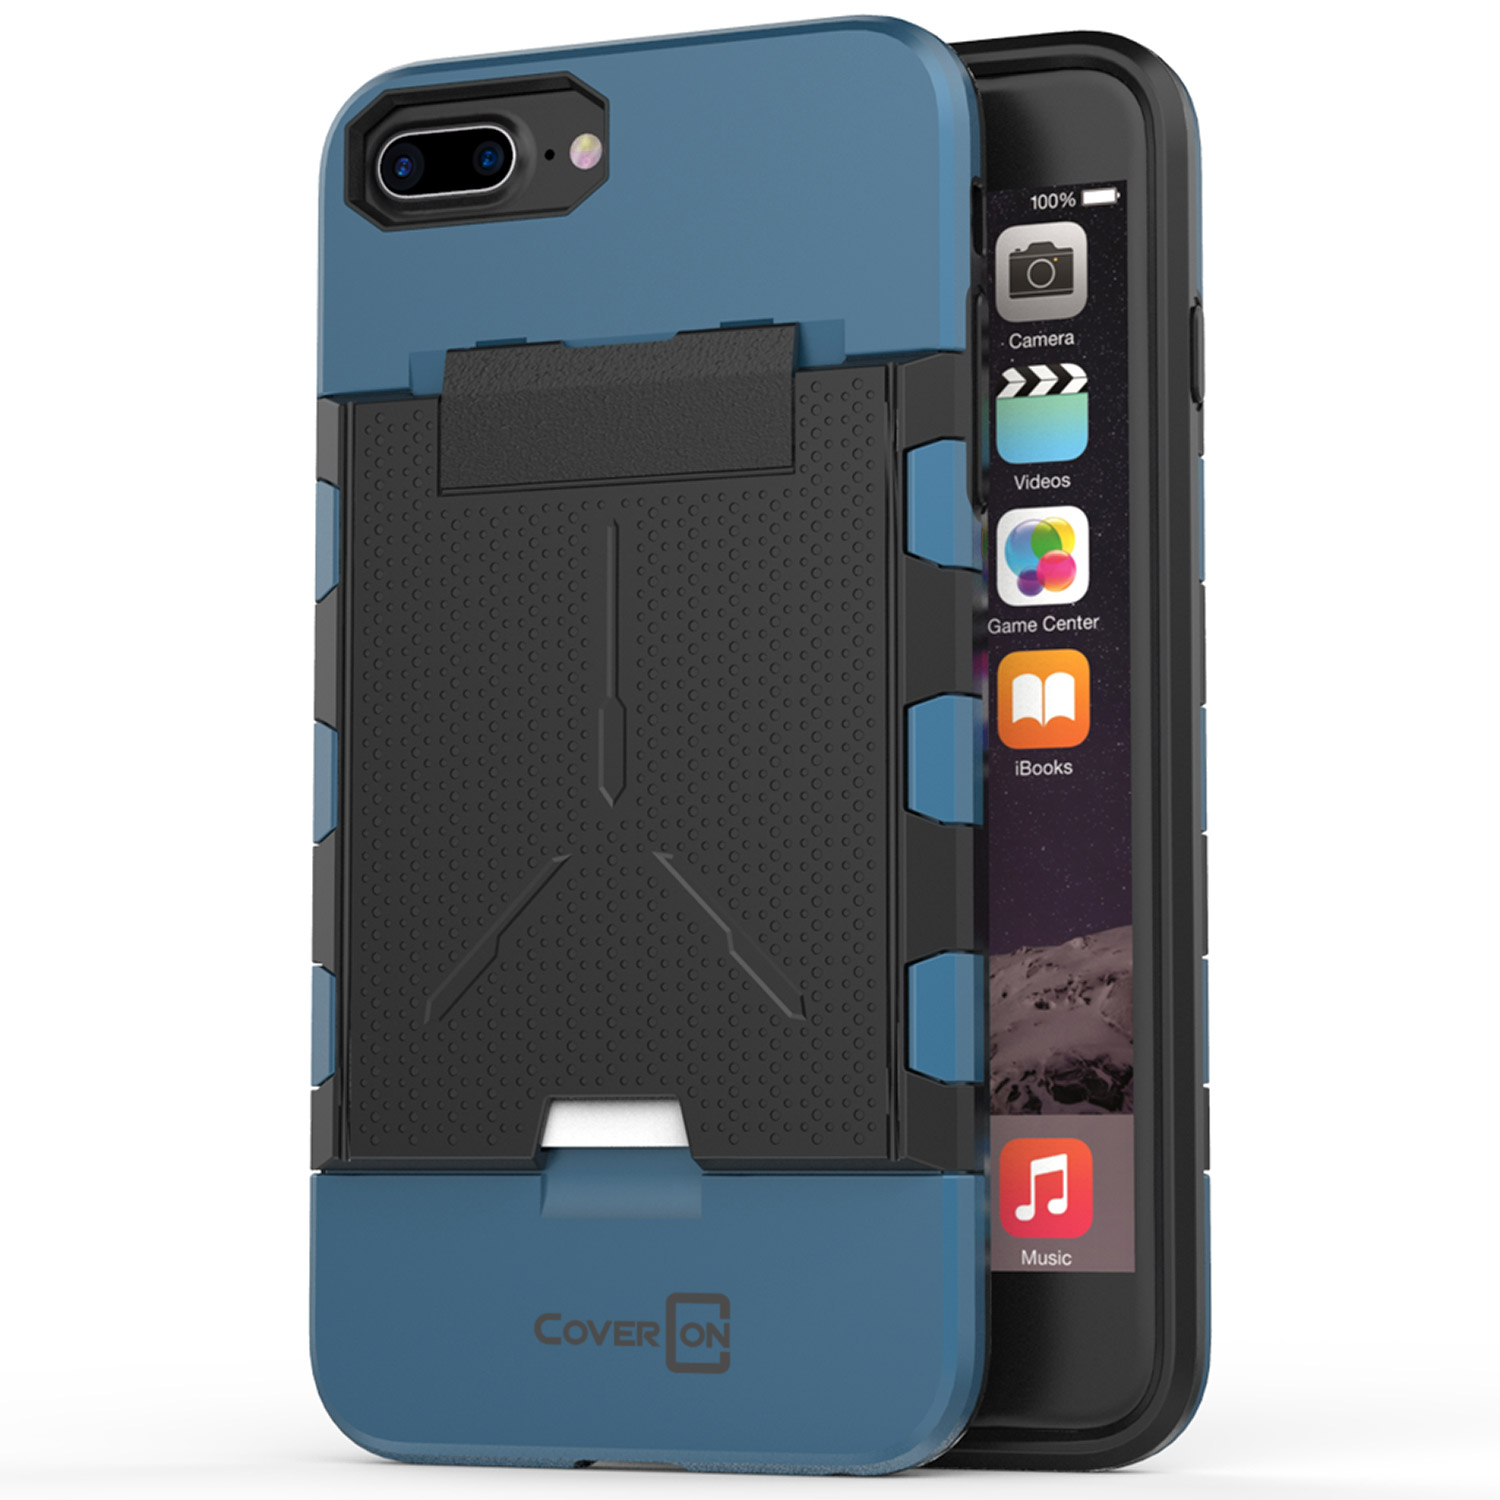 ... -Layer-Kickstand-Hybrid-Phone-Cover-Case-for-LG-Optimus-Dynamic-II-2